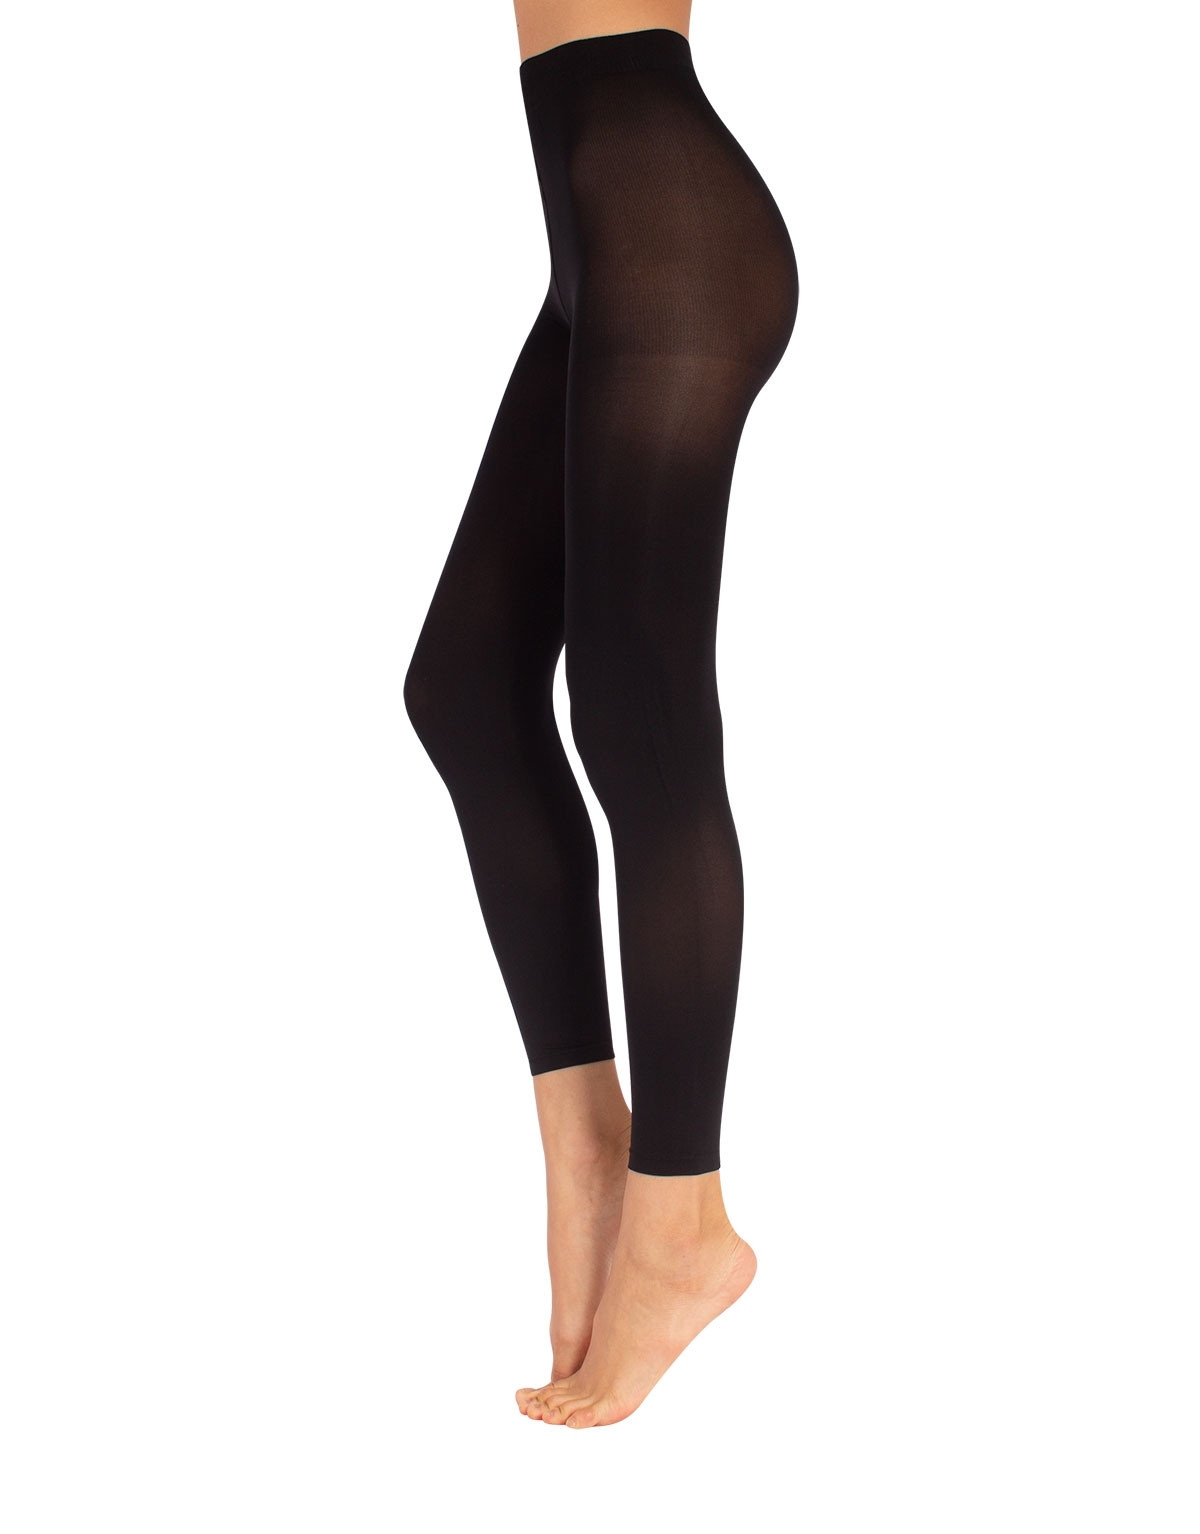 LEGGINGS MICROFIBRA 3D - 60 DEN